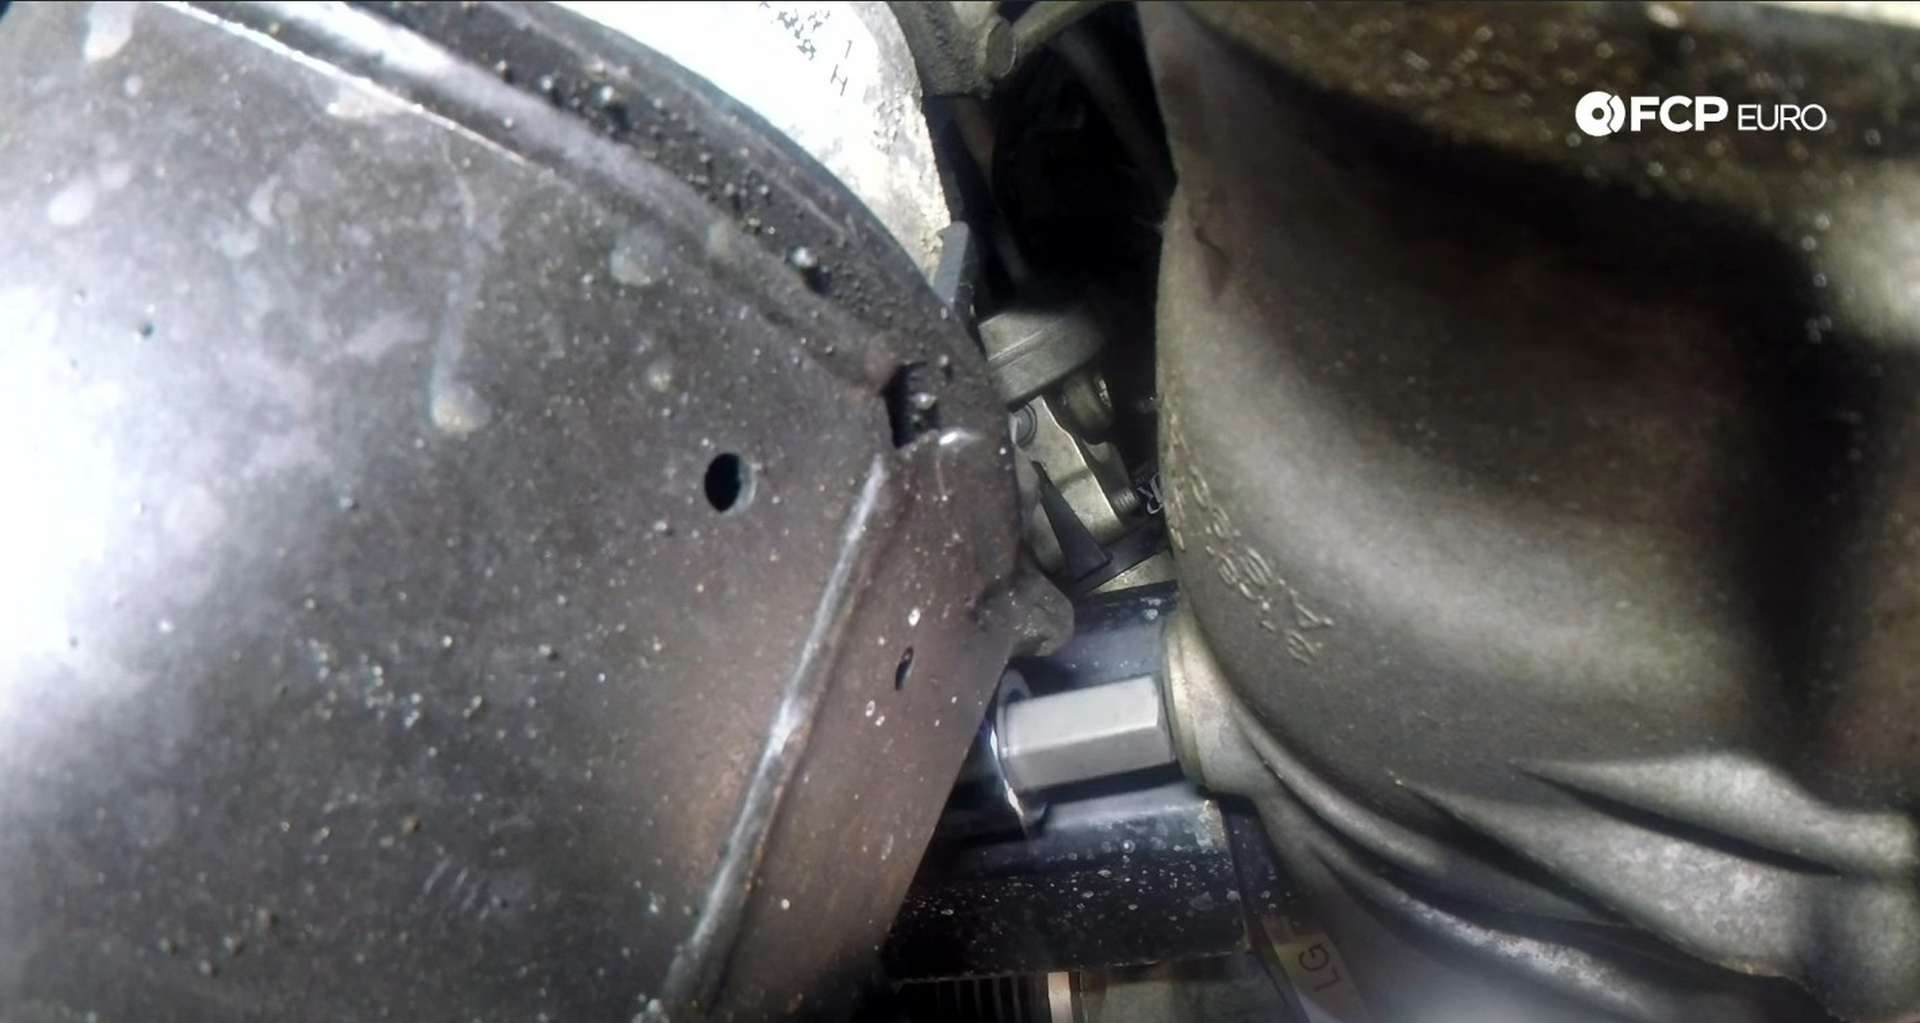 DIY BMW F30 Front Differential Fluid Replacement removing the fill plug